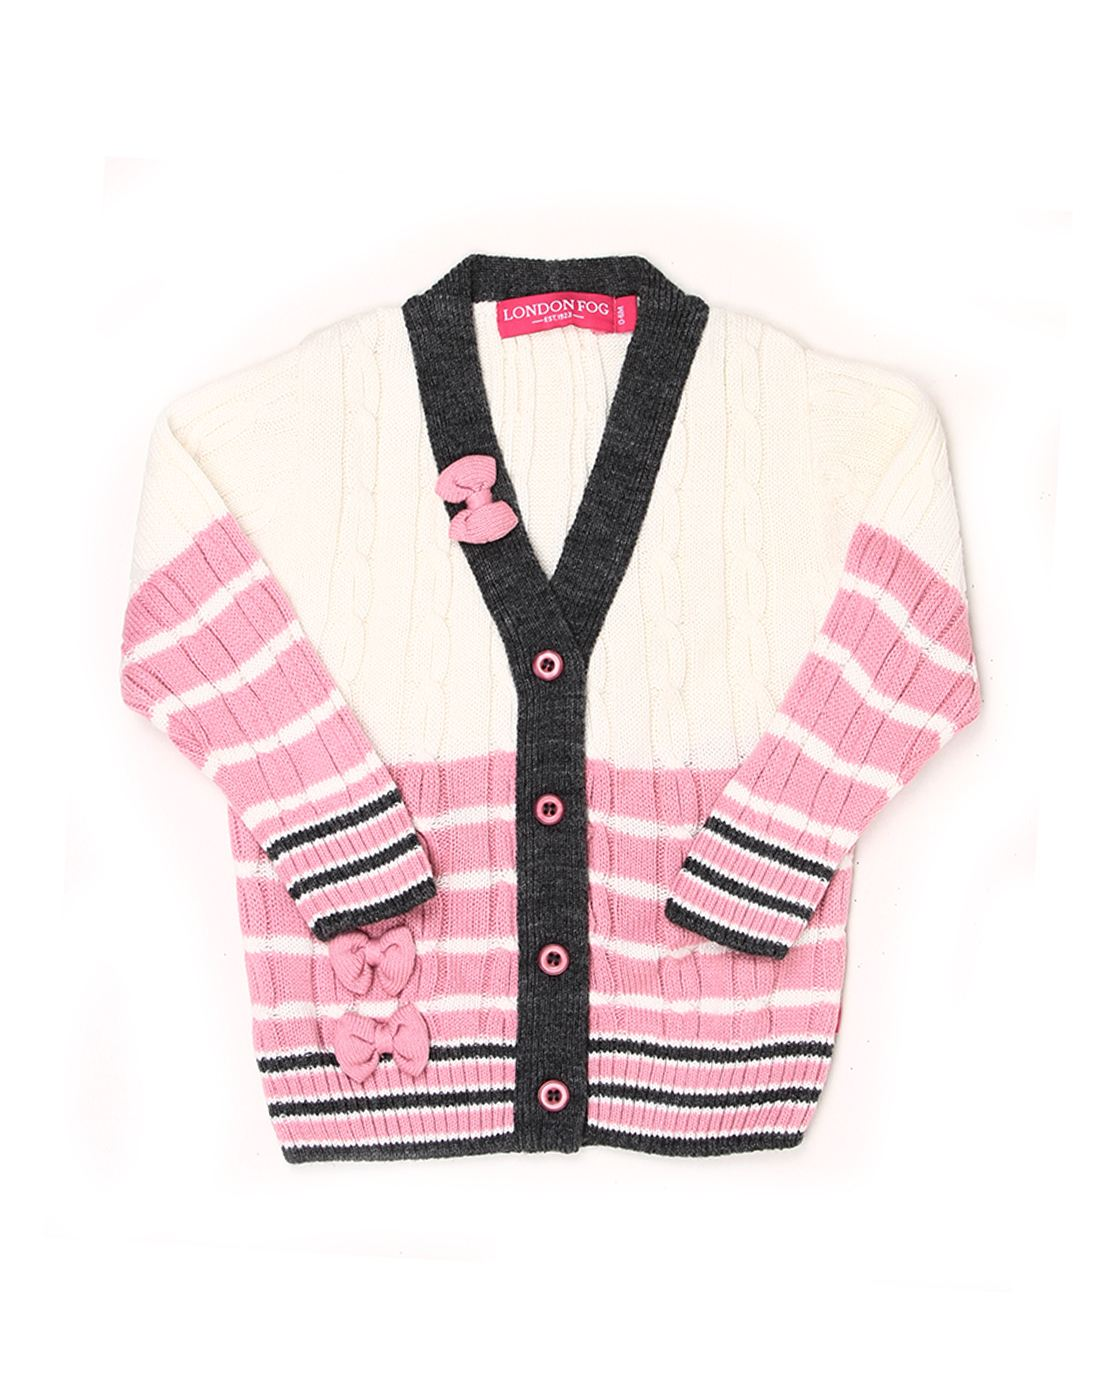 London Fog Baby Girls Multicolor Sweater